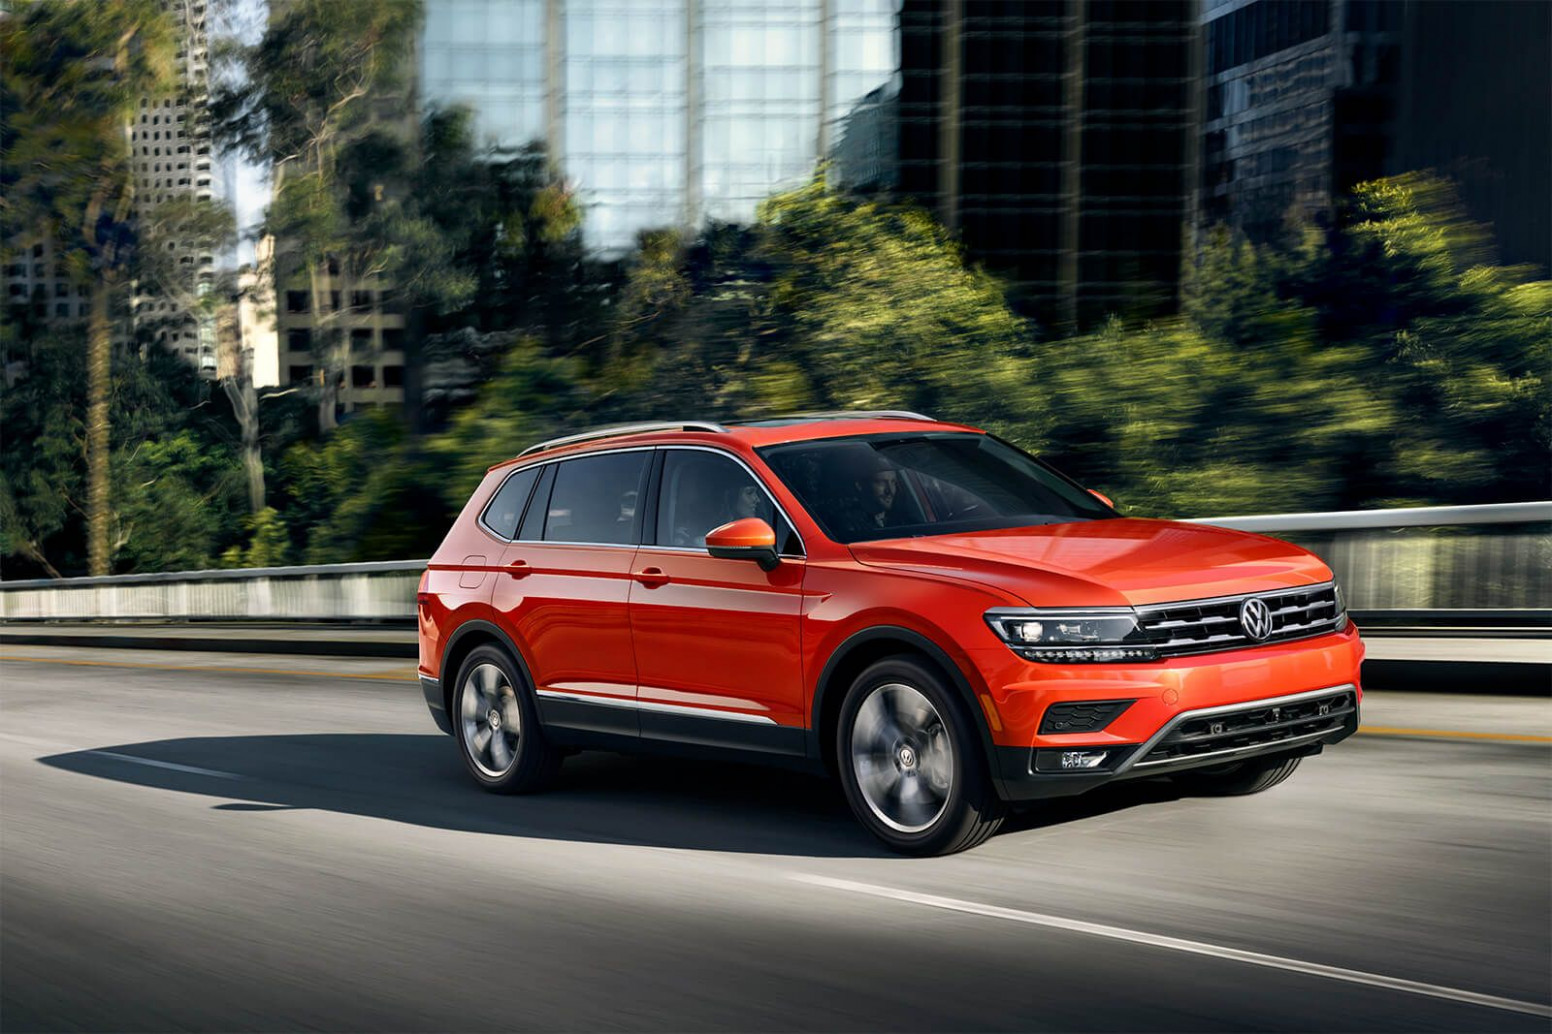 8 Volkswagen Tiguan Review, Pricing, and Specs